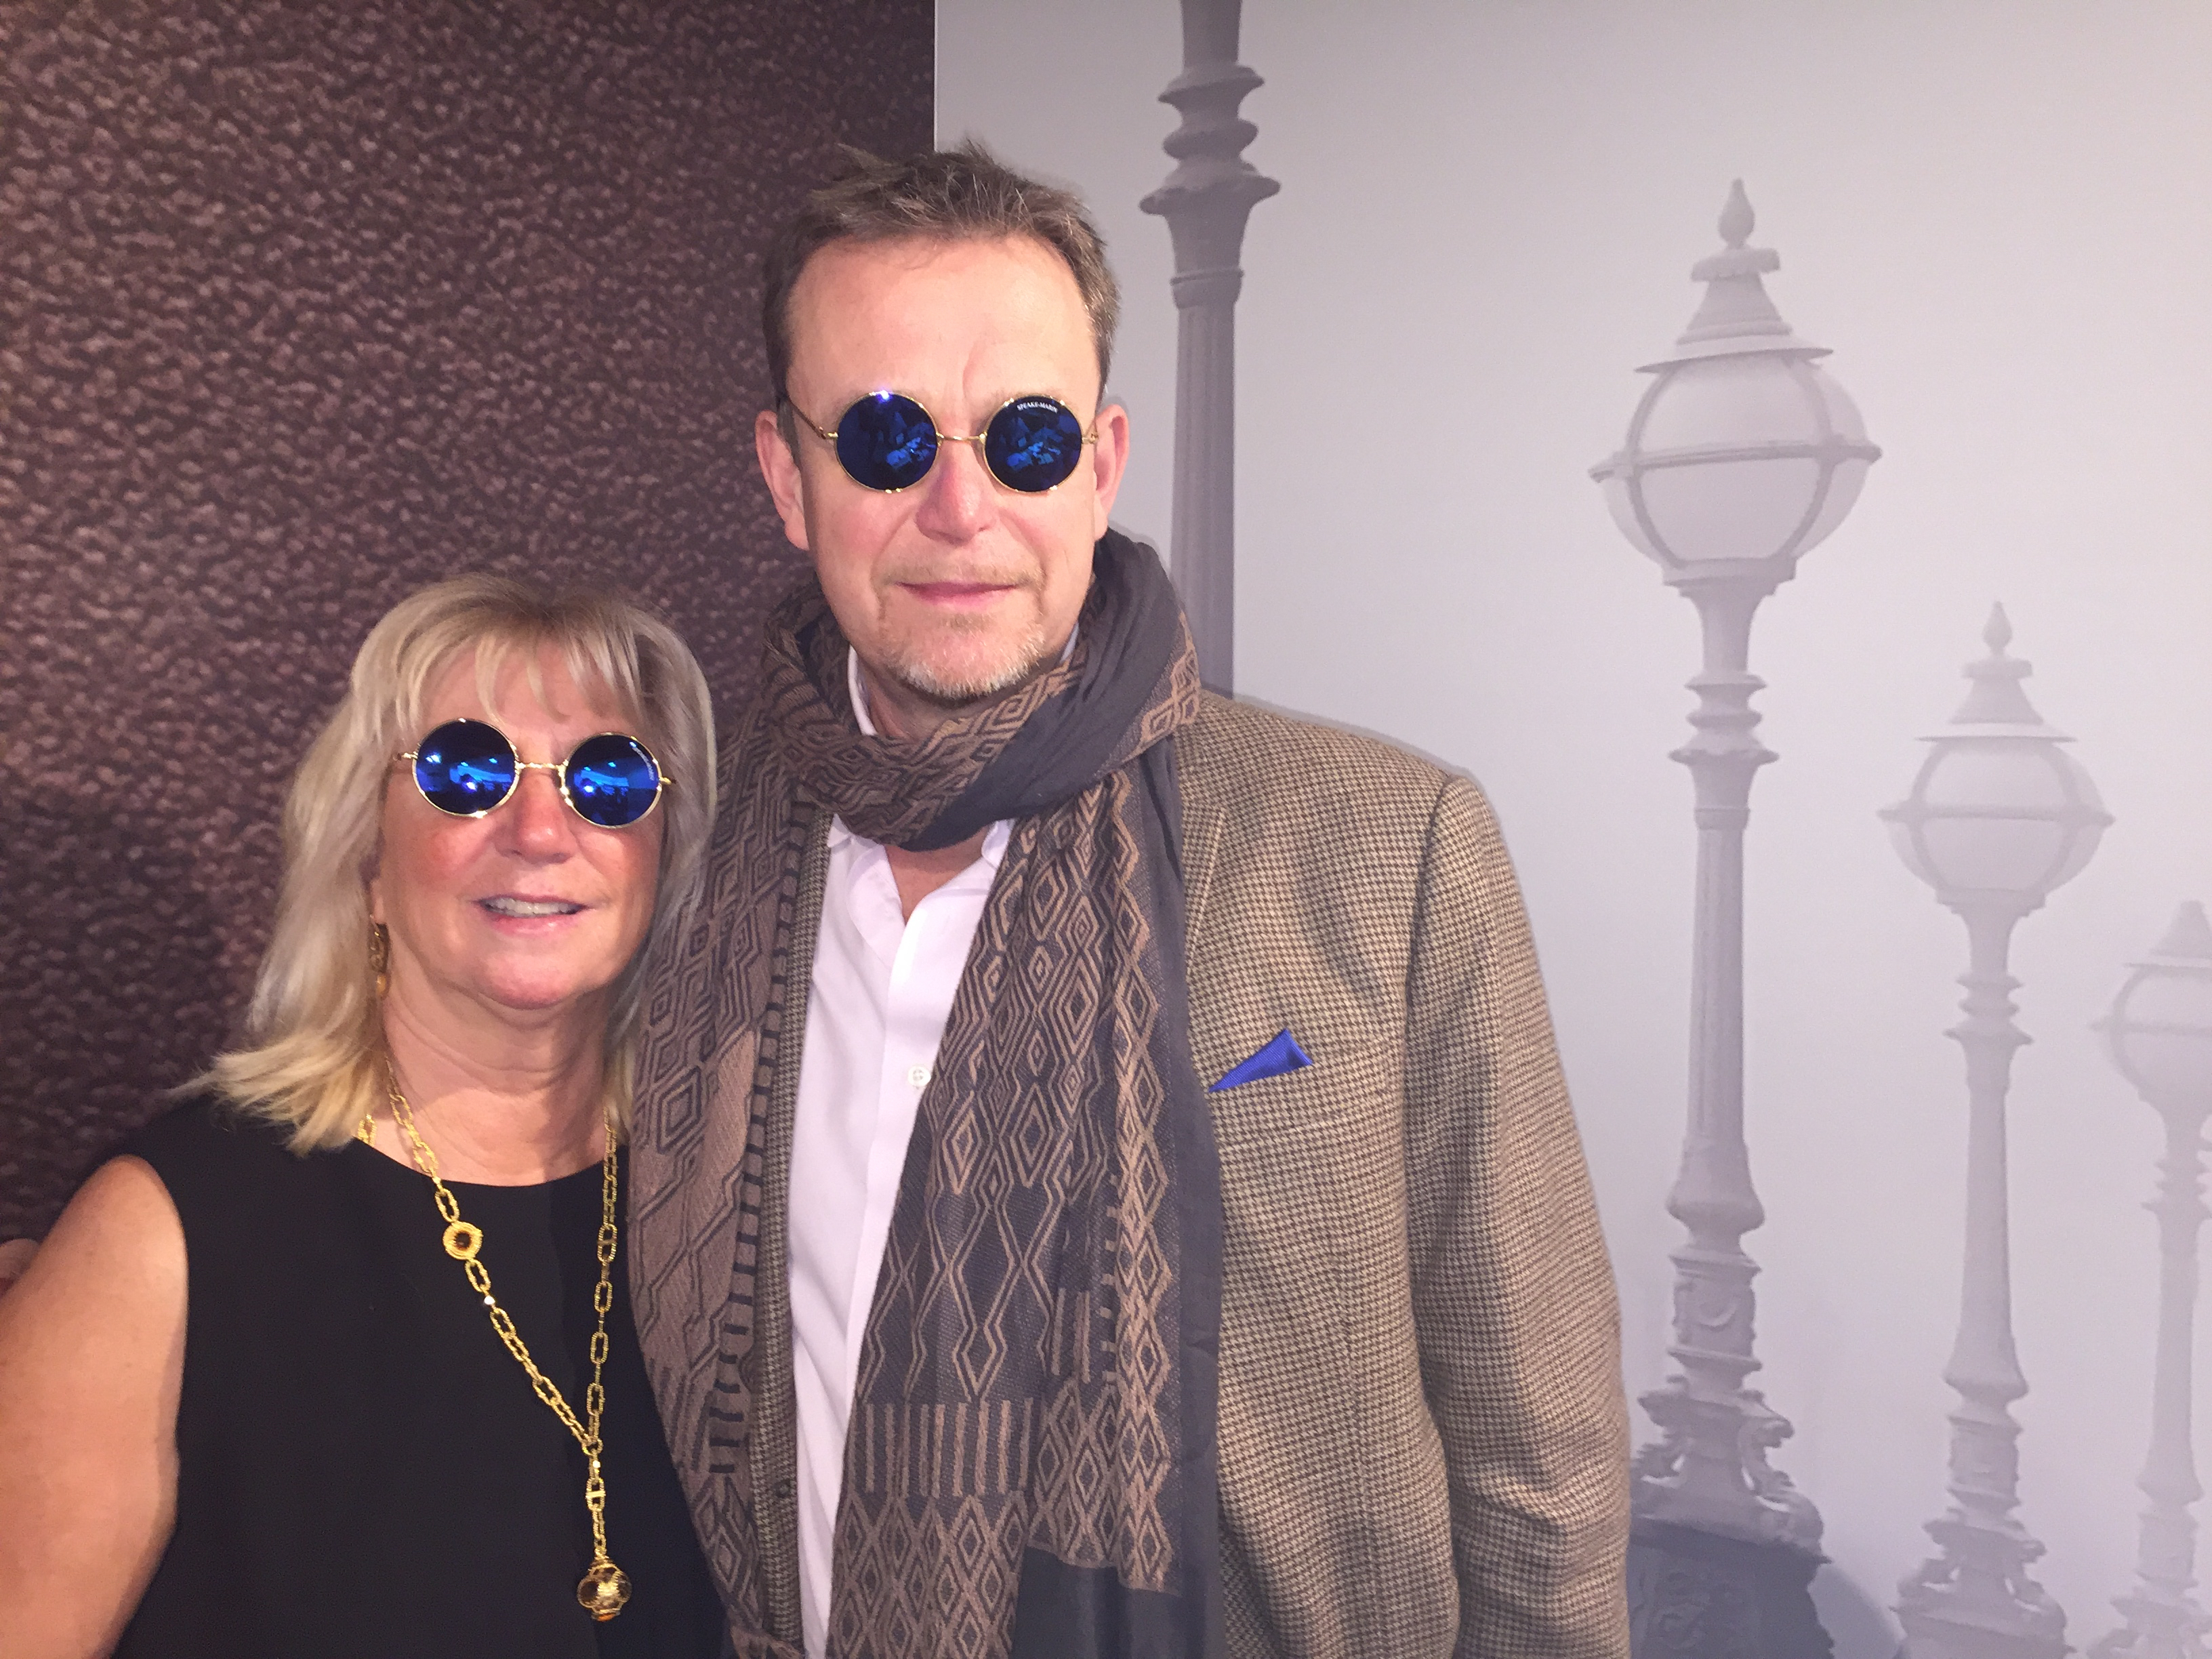 Roberta Naas, founder of ATimelyPerspective, and Peter Speake-Marin at SIHH 2017.